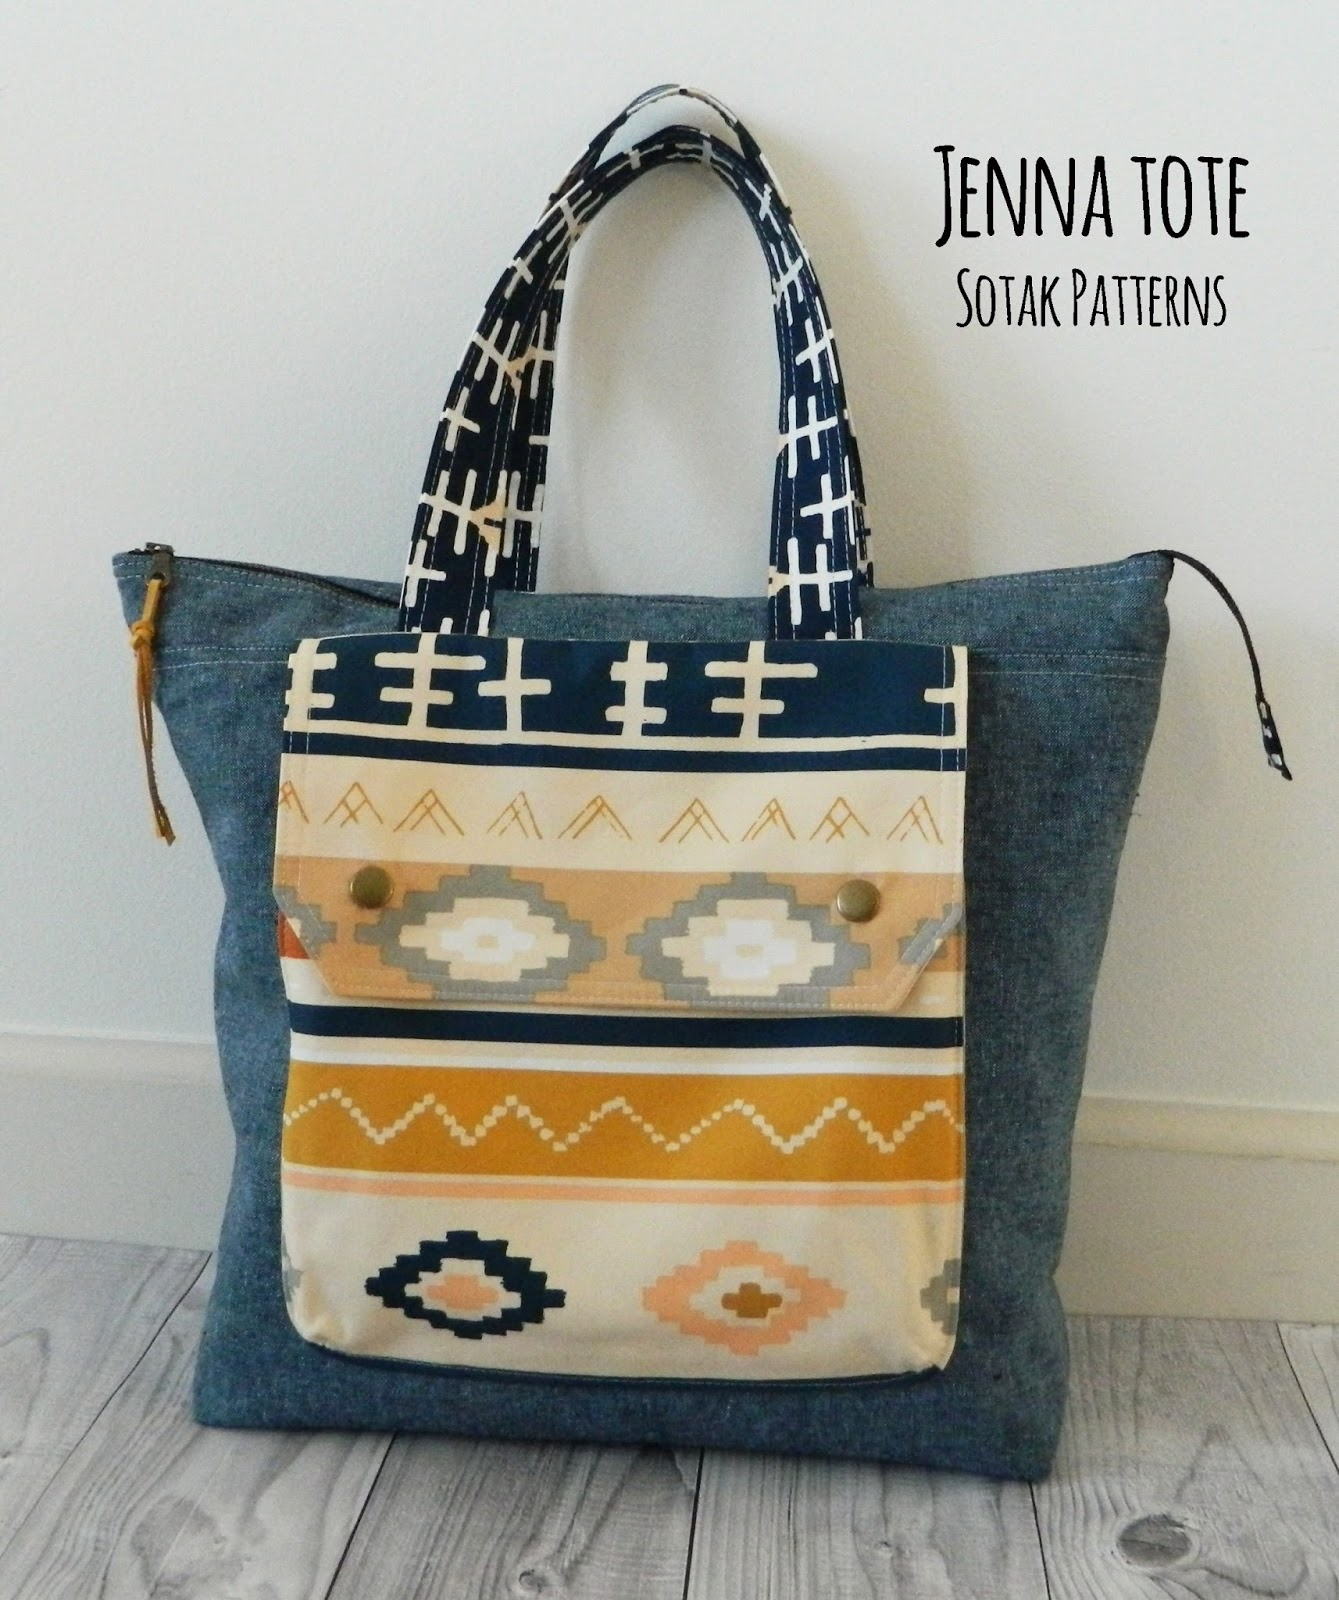 s o t a k handmade jenna tote new pdf pattern. Black Bedroom Furniture Sets. Home Design Ideas